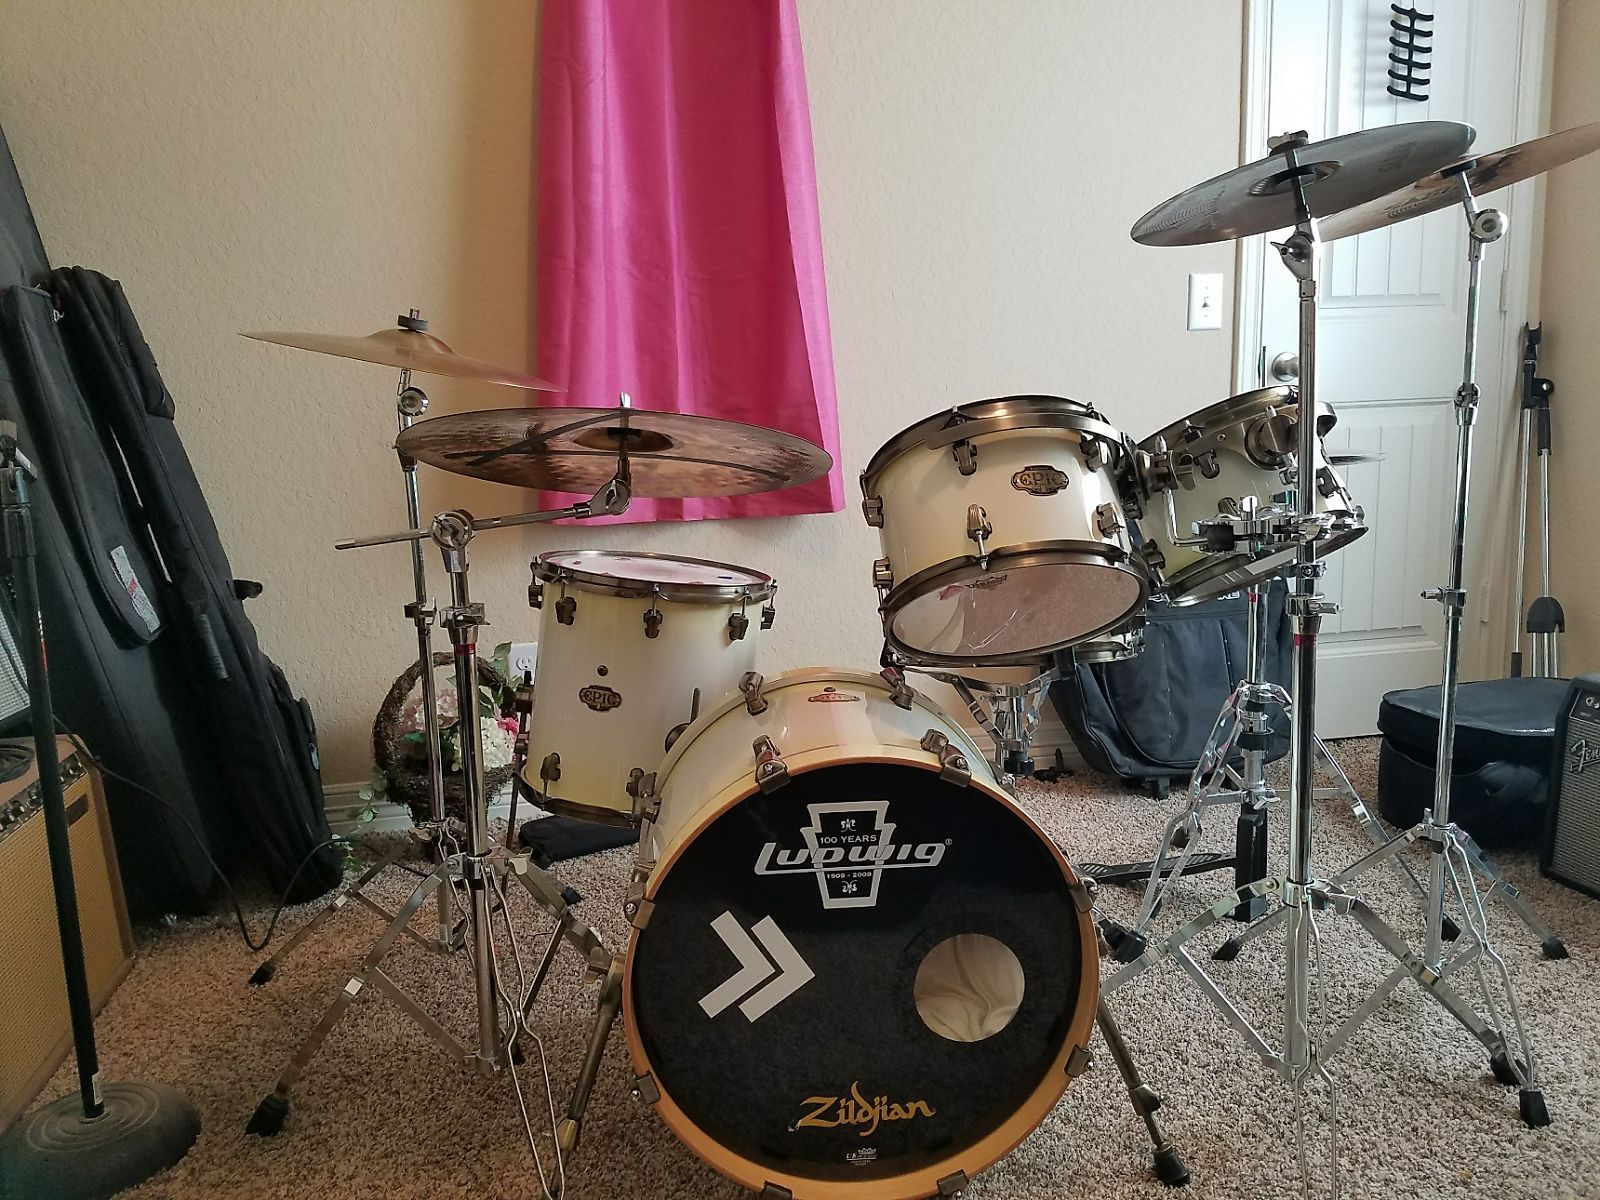 Ludwig Epic Series 100th Anniversary 2009 Attic White Andrew S Shop Reverb Drum And Bass Ludwig Drums Drums